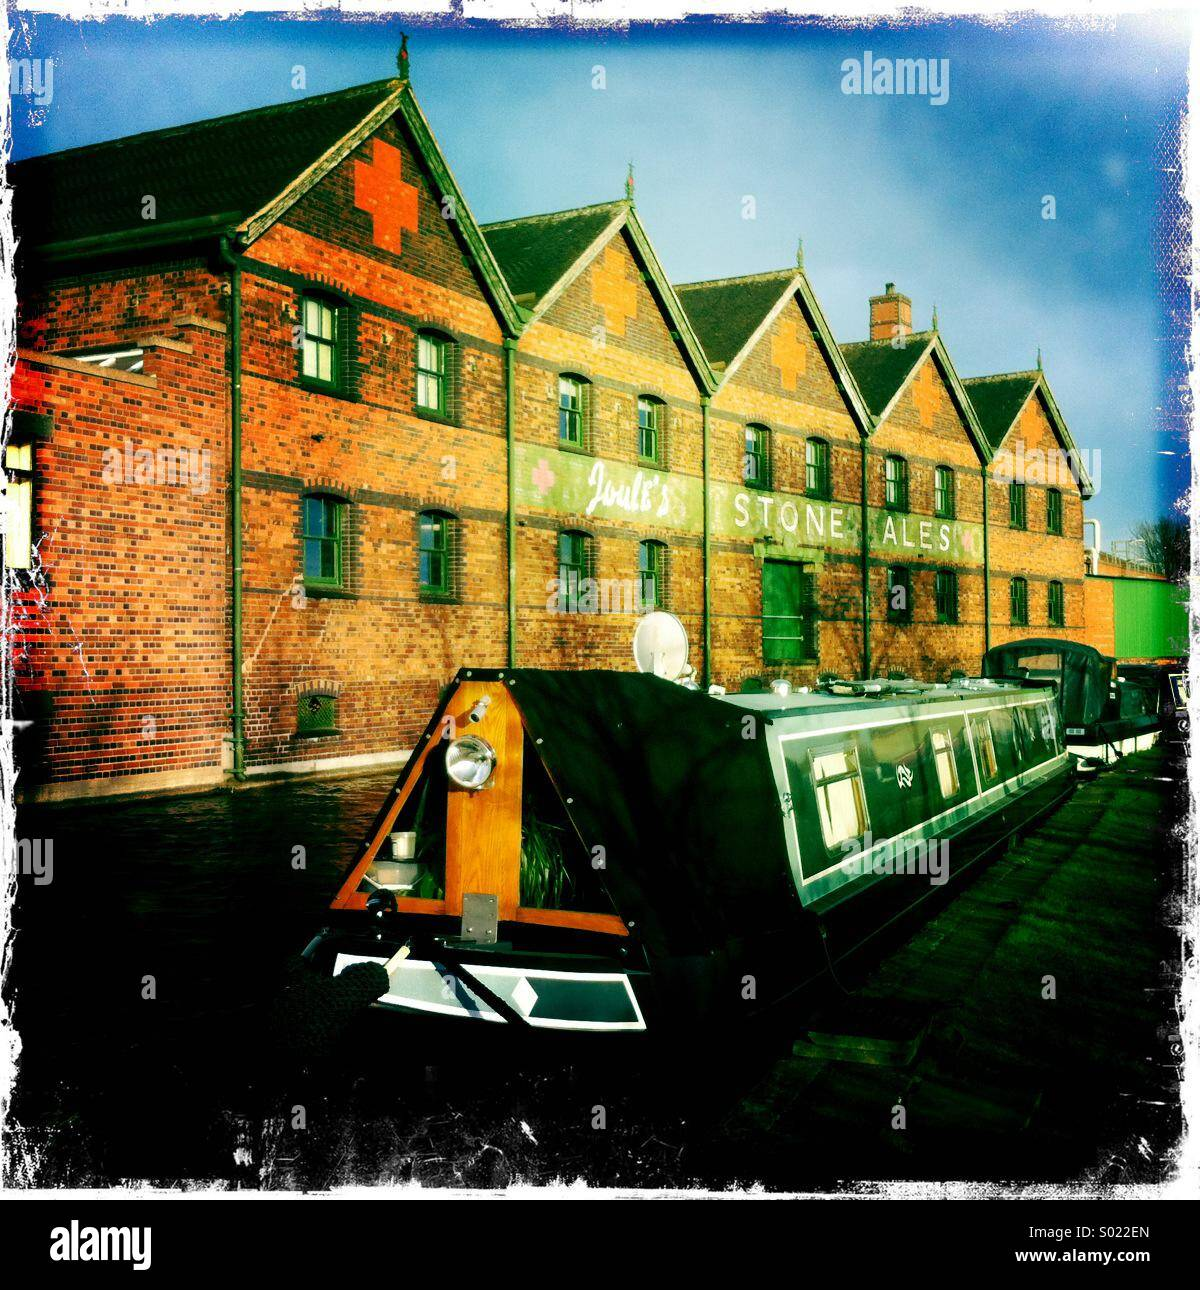 Narrowboat in front of Joule's brewery, Stone, Staffordshire. - Stock Image